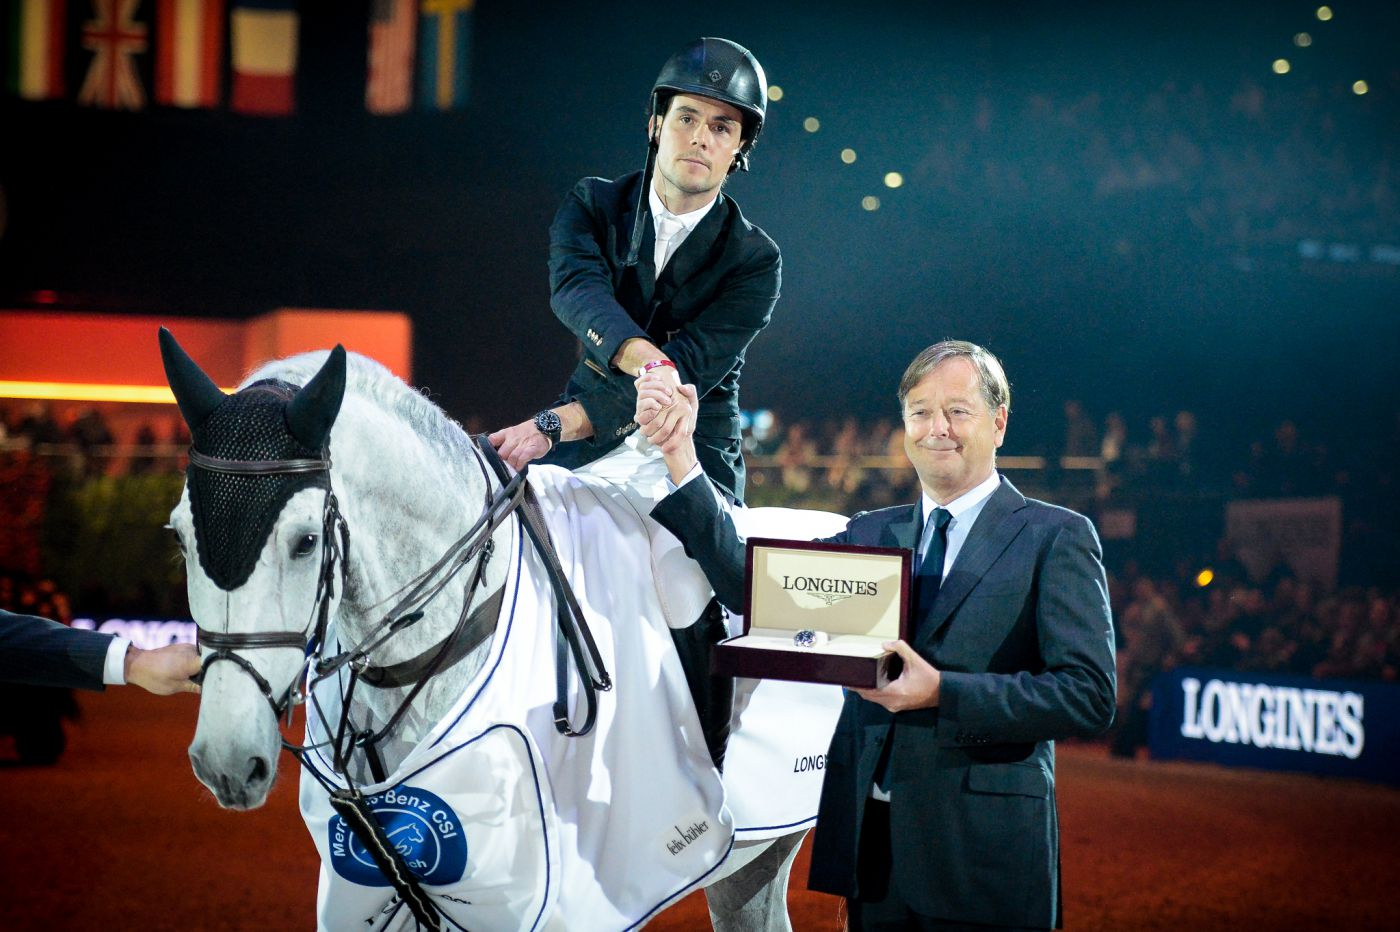 Longines Show Jumping Event: Sergio Alvarez Moya (ESP) wins the Swiss leg of the Longines FEI World Cup™ in Zurich 4